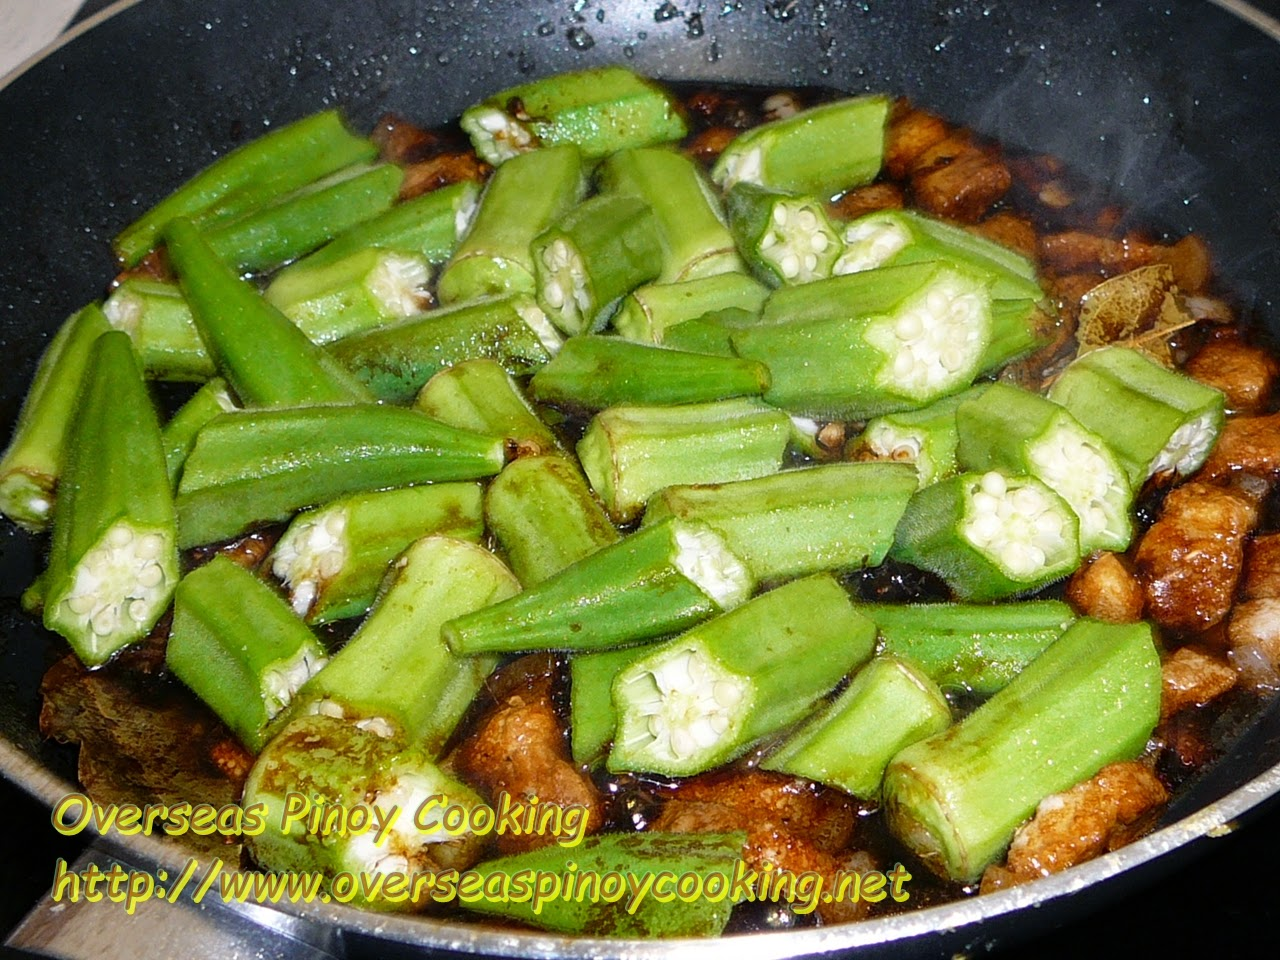 Adobong Okra - Cooking Procedure